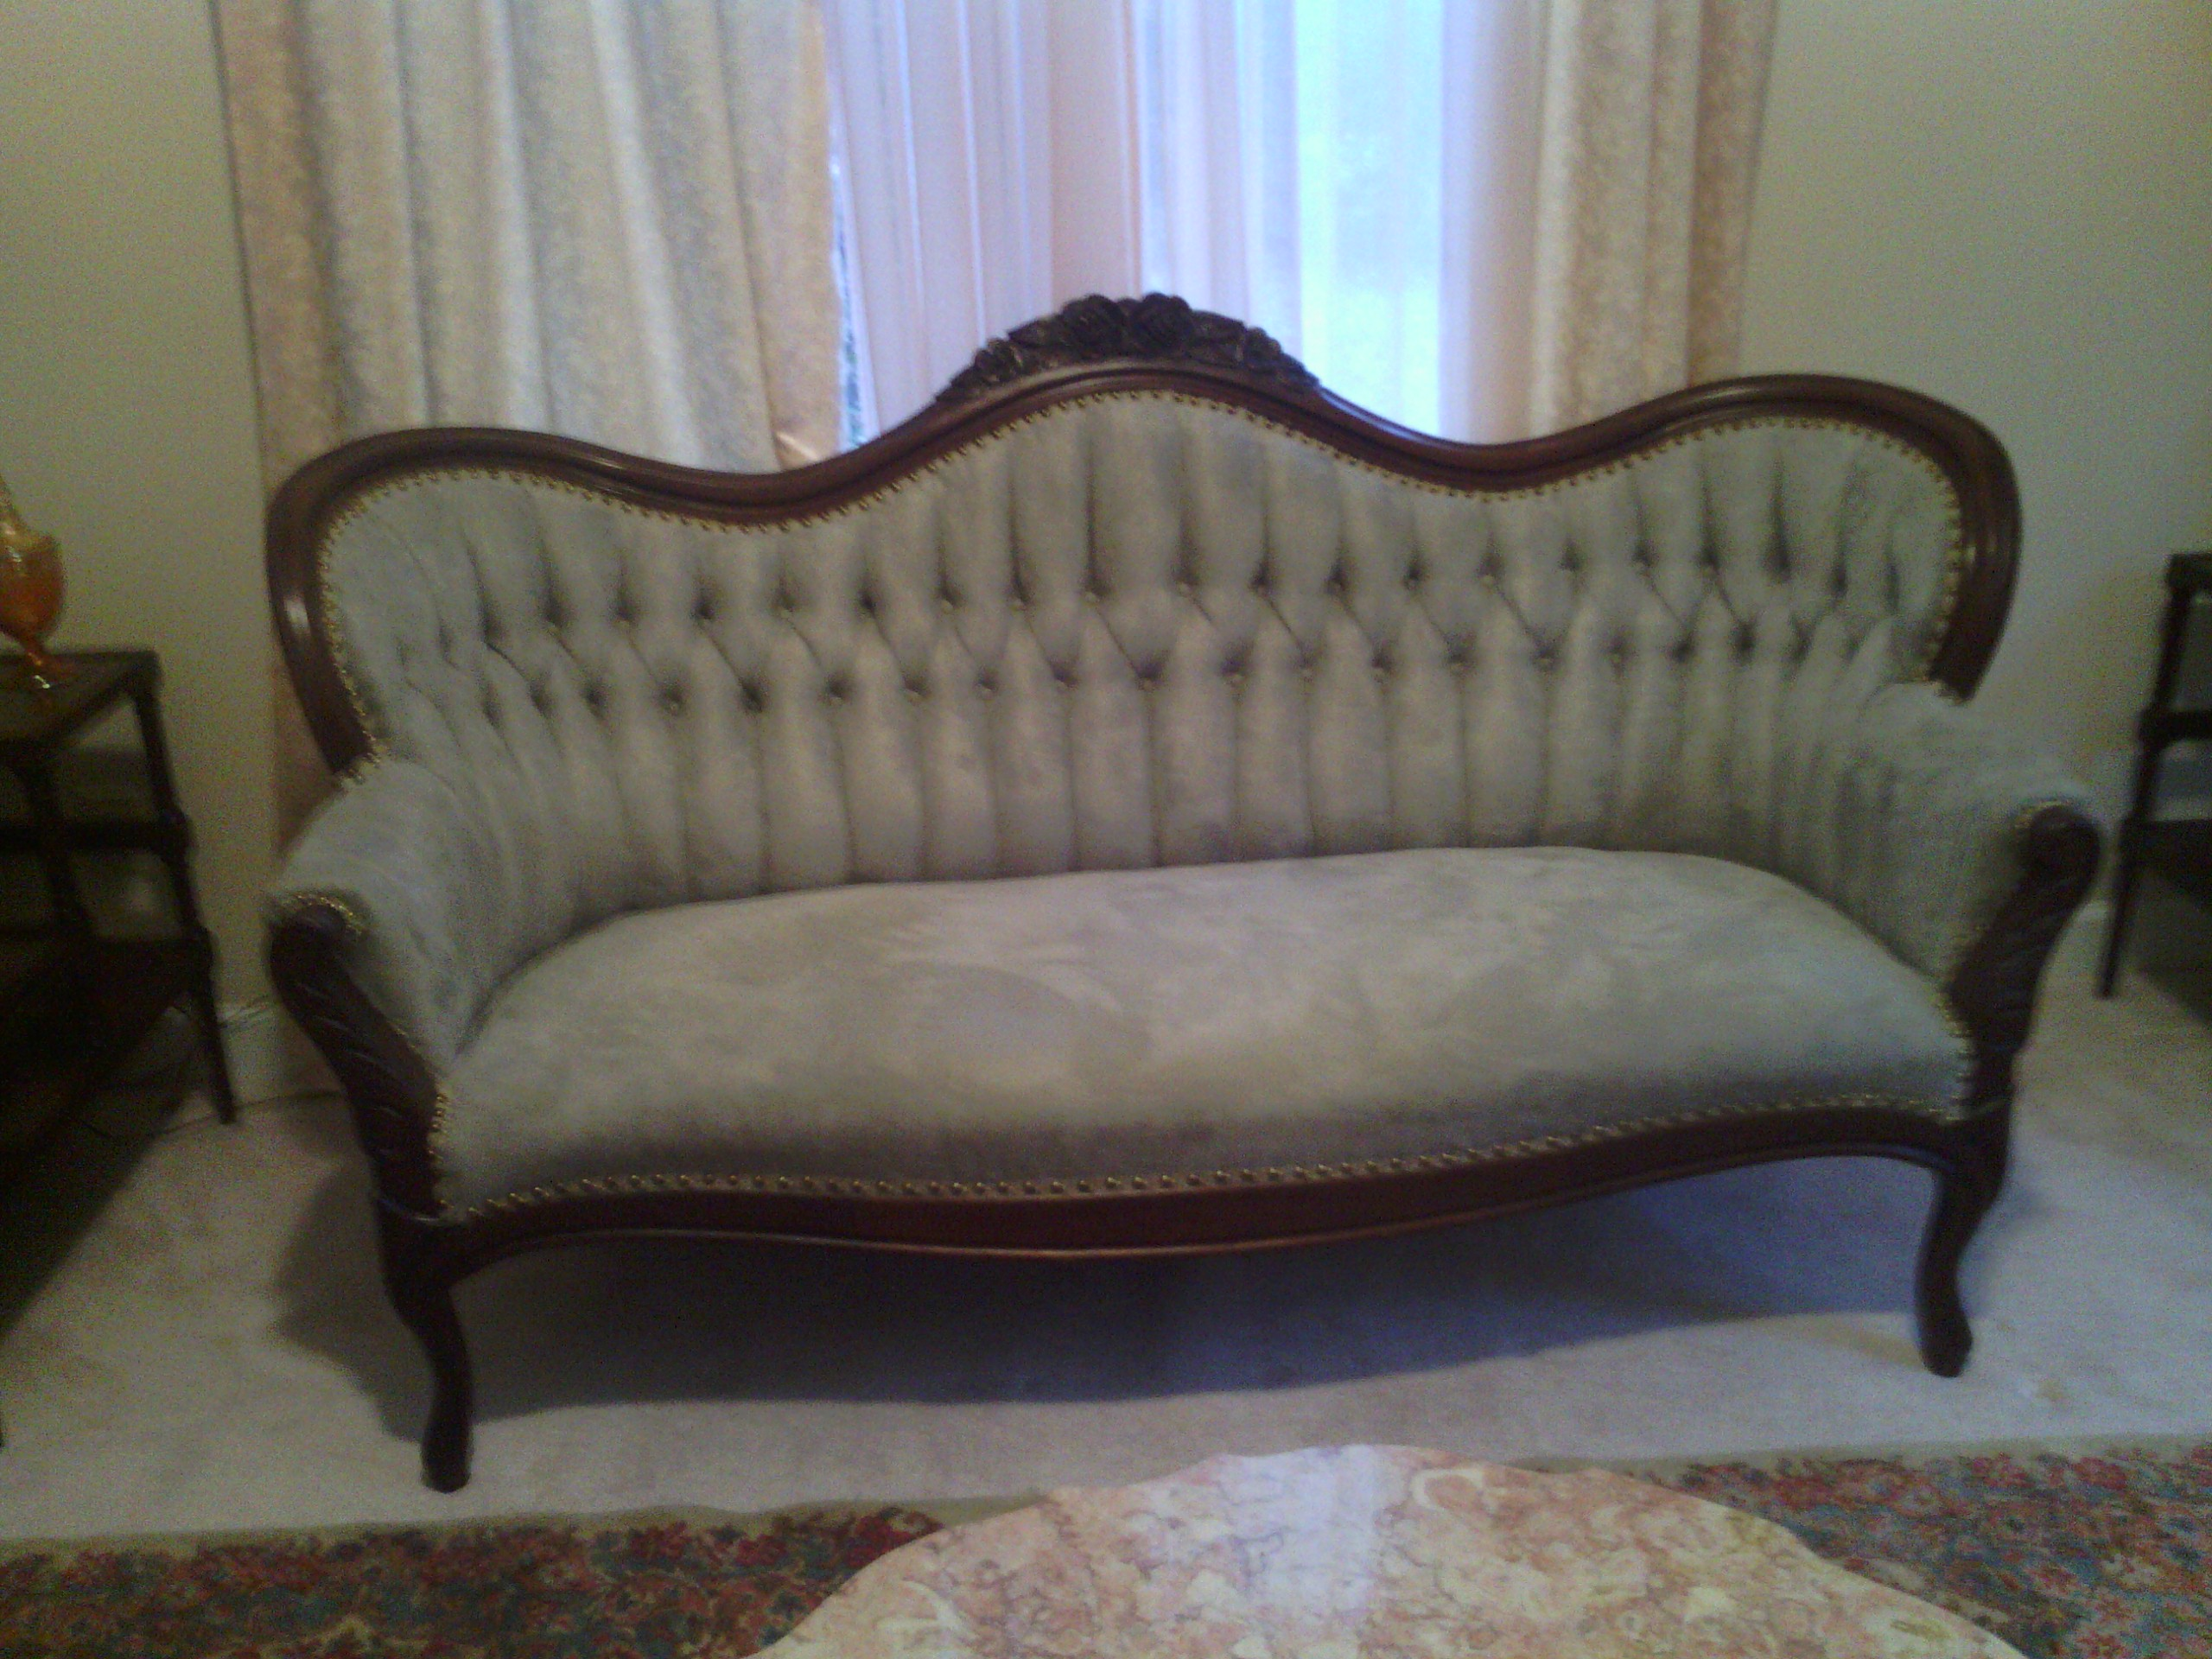 Upholstered-furniture.jpg